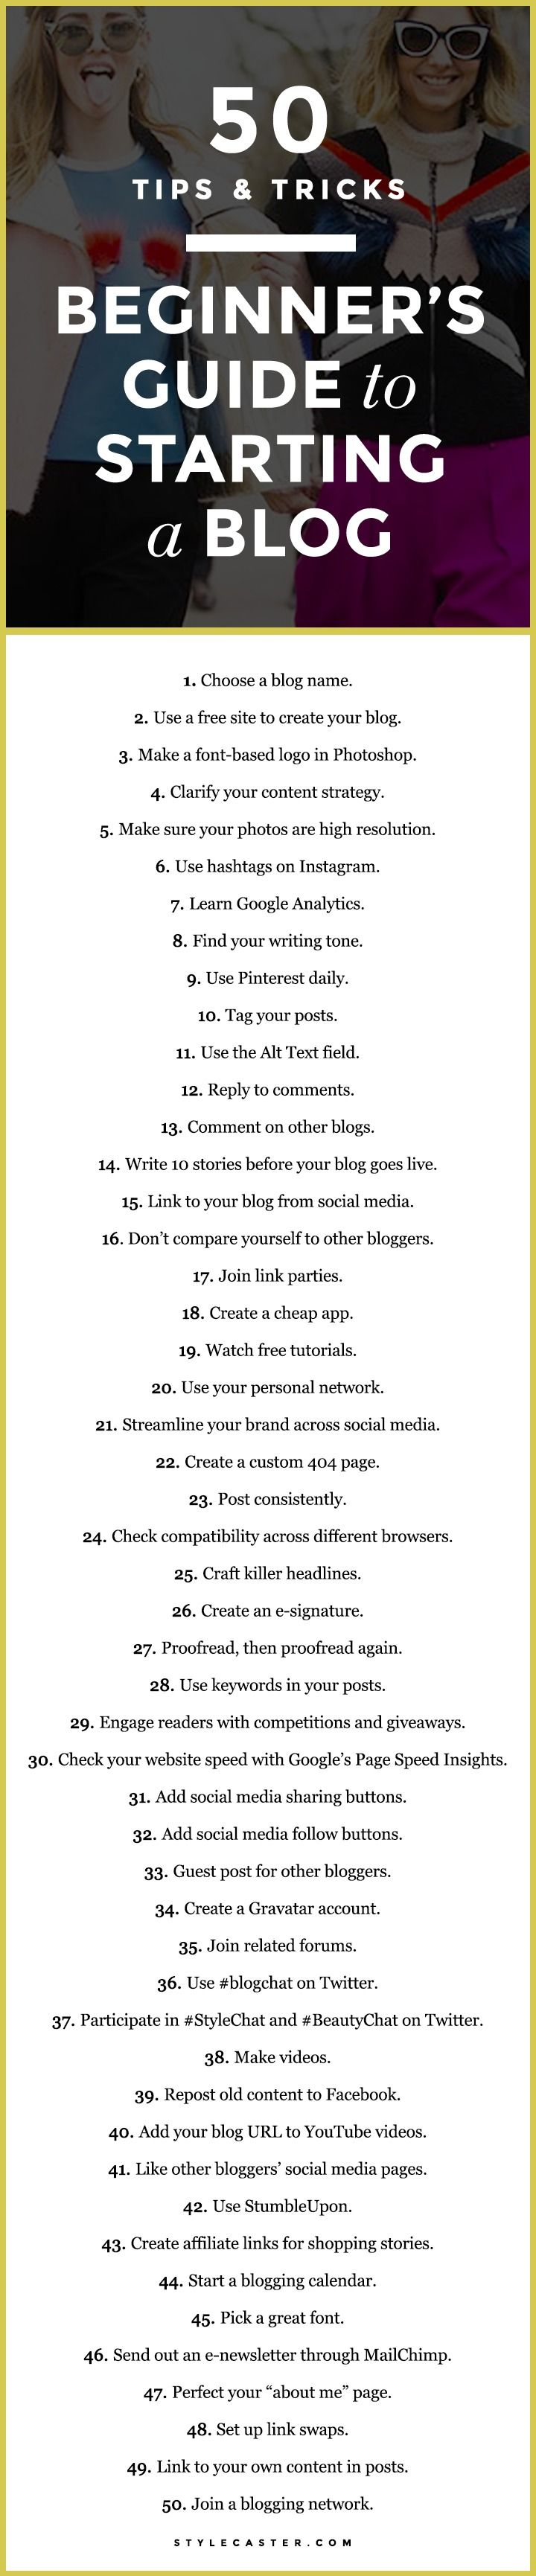 A Beginner's Guide to Starting a Blog: 50 Essential Tips and TricksRebecca Shah